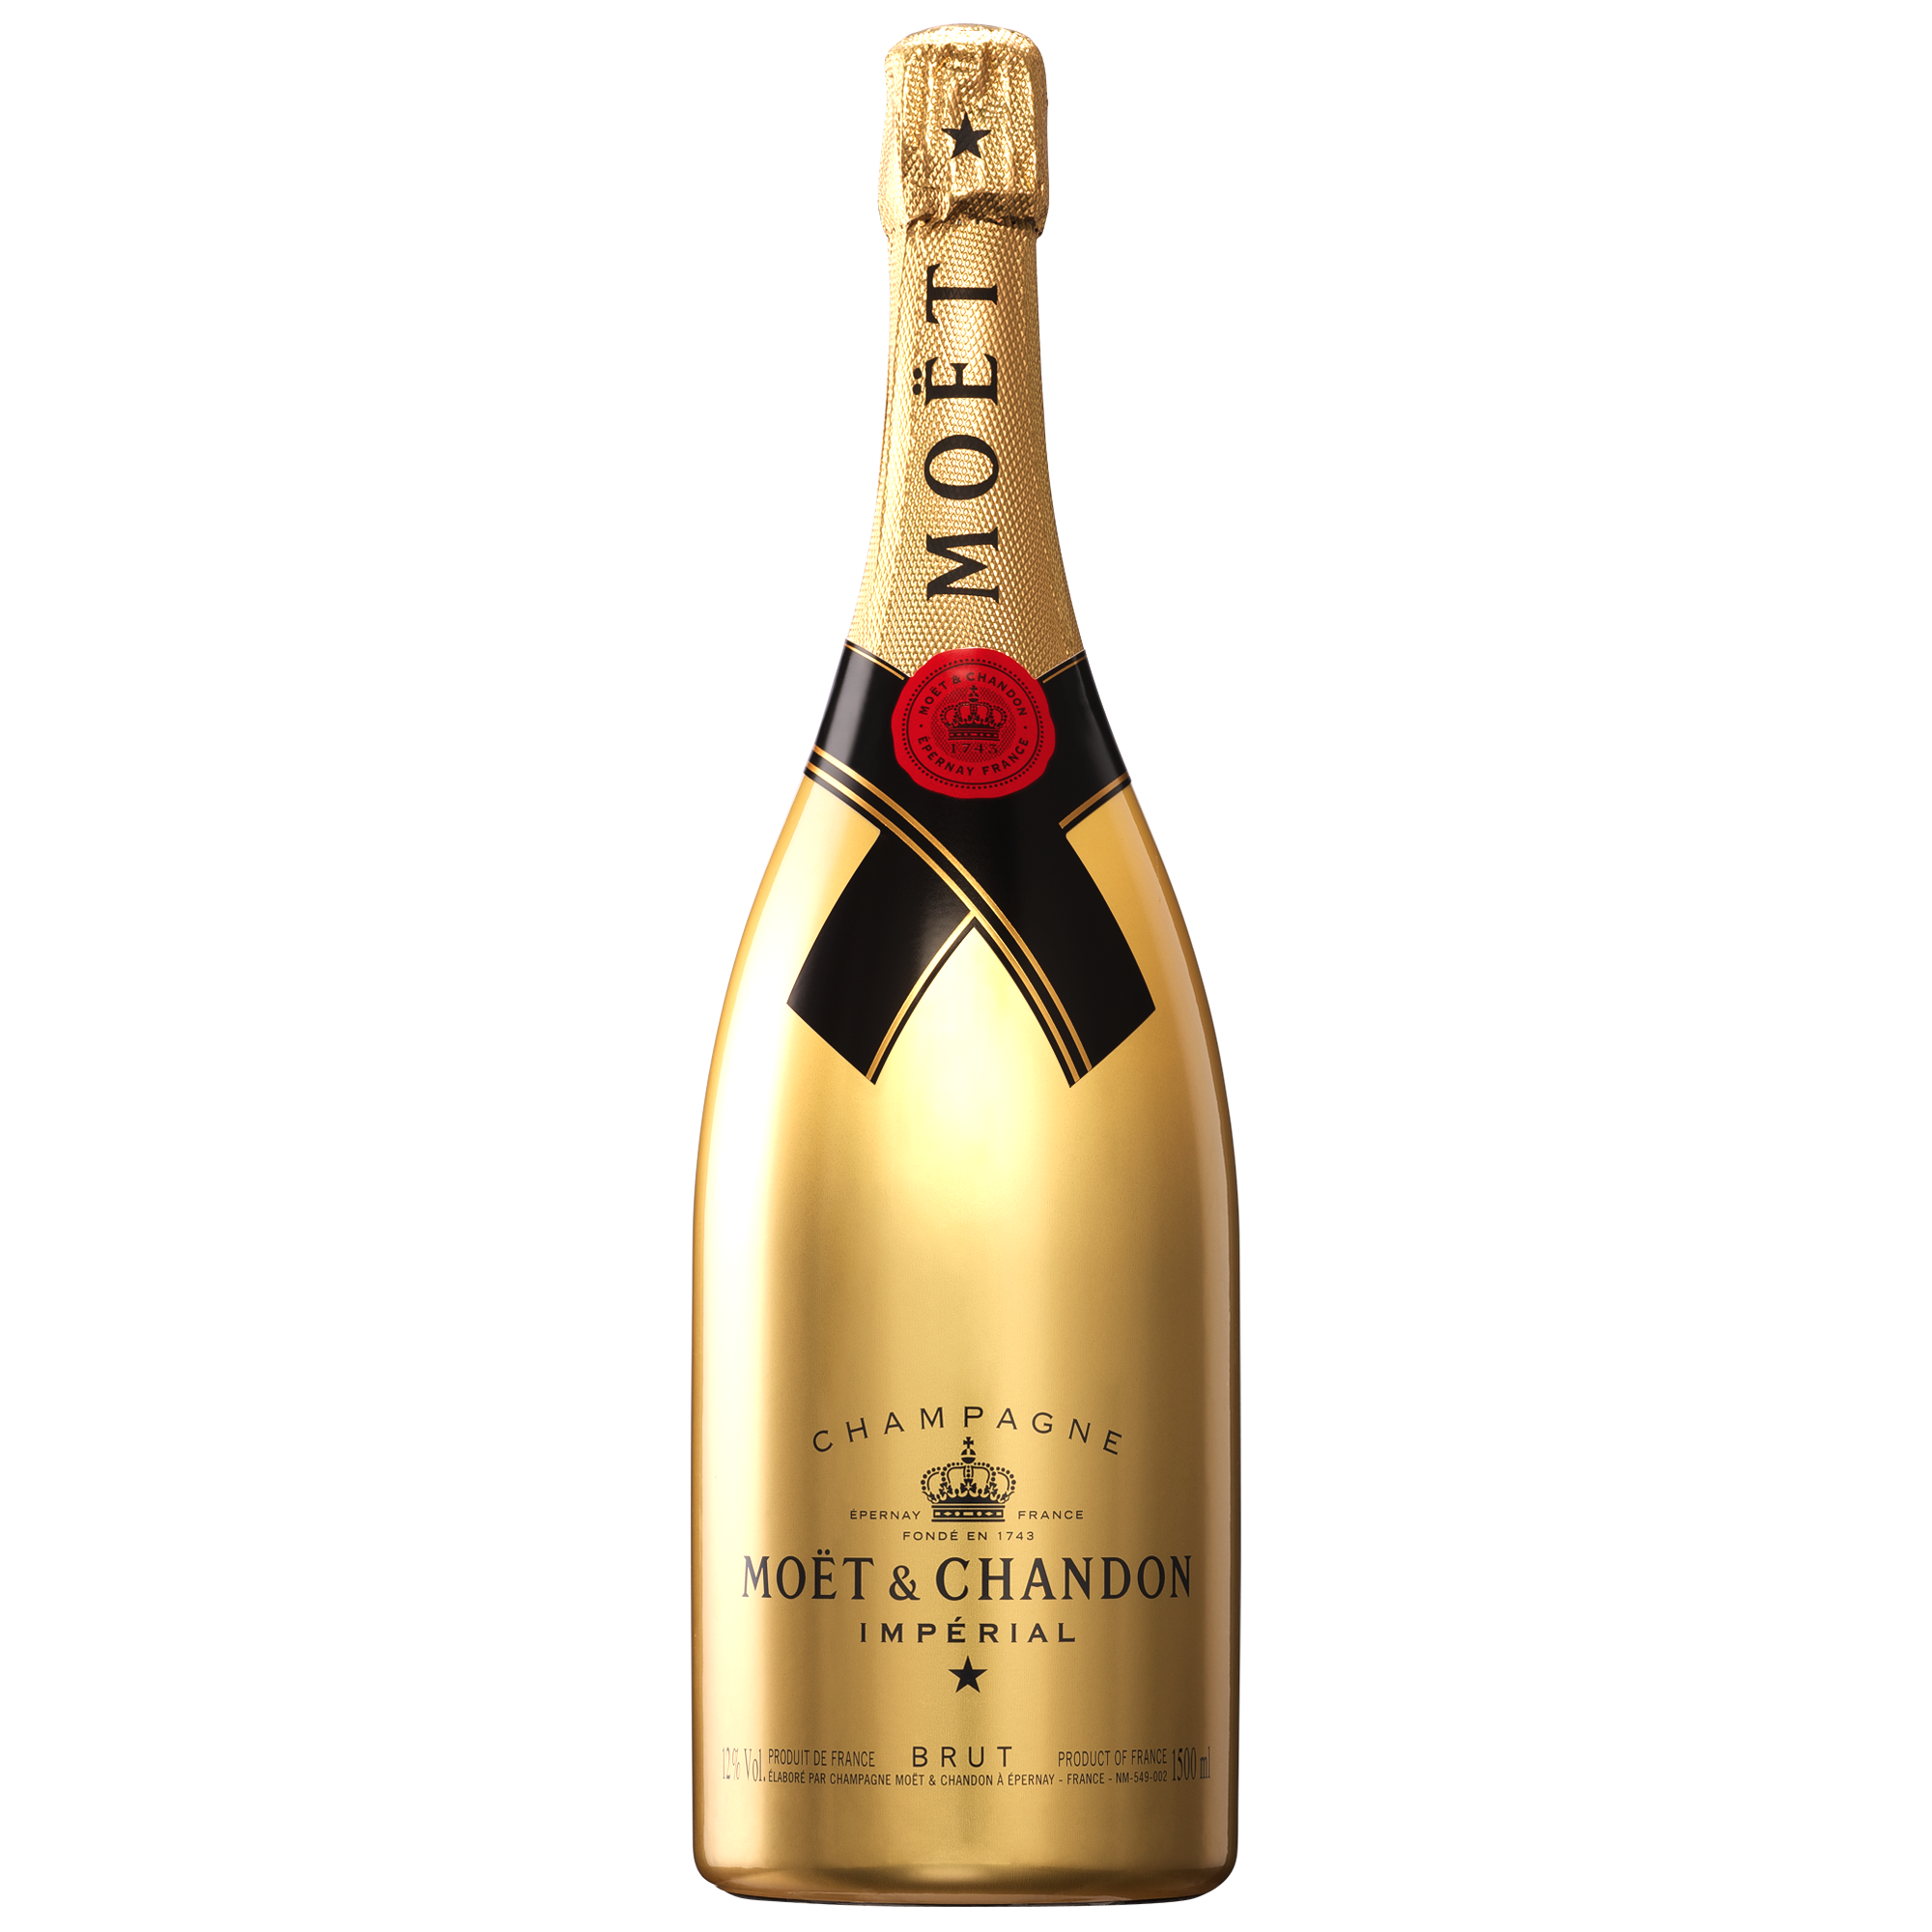 2000x2000 Champagne Png Images, Champagne Bottle Glass Png